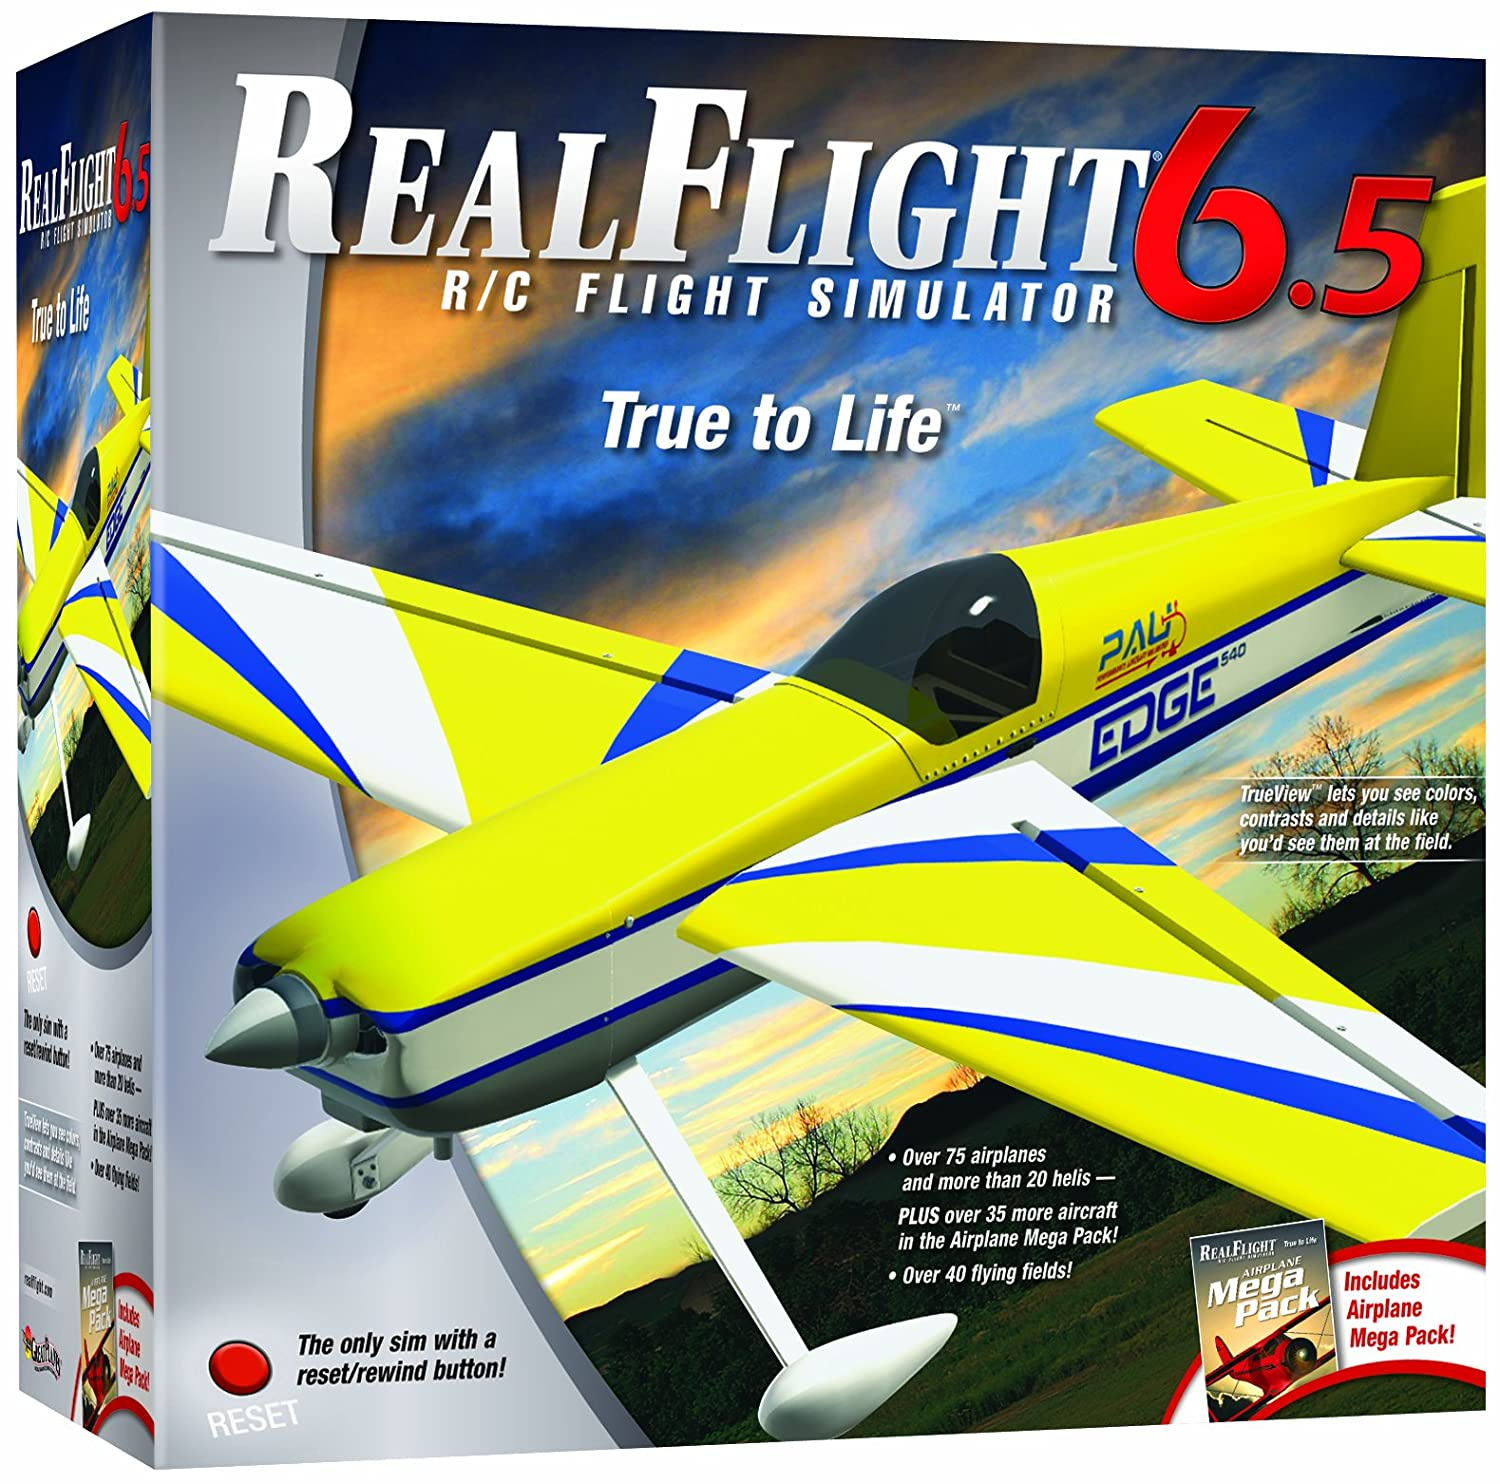 Great Planes RealFlight 6 5 Airplane with Mode 2 Interlink